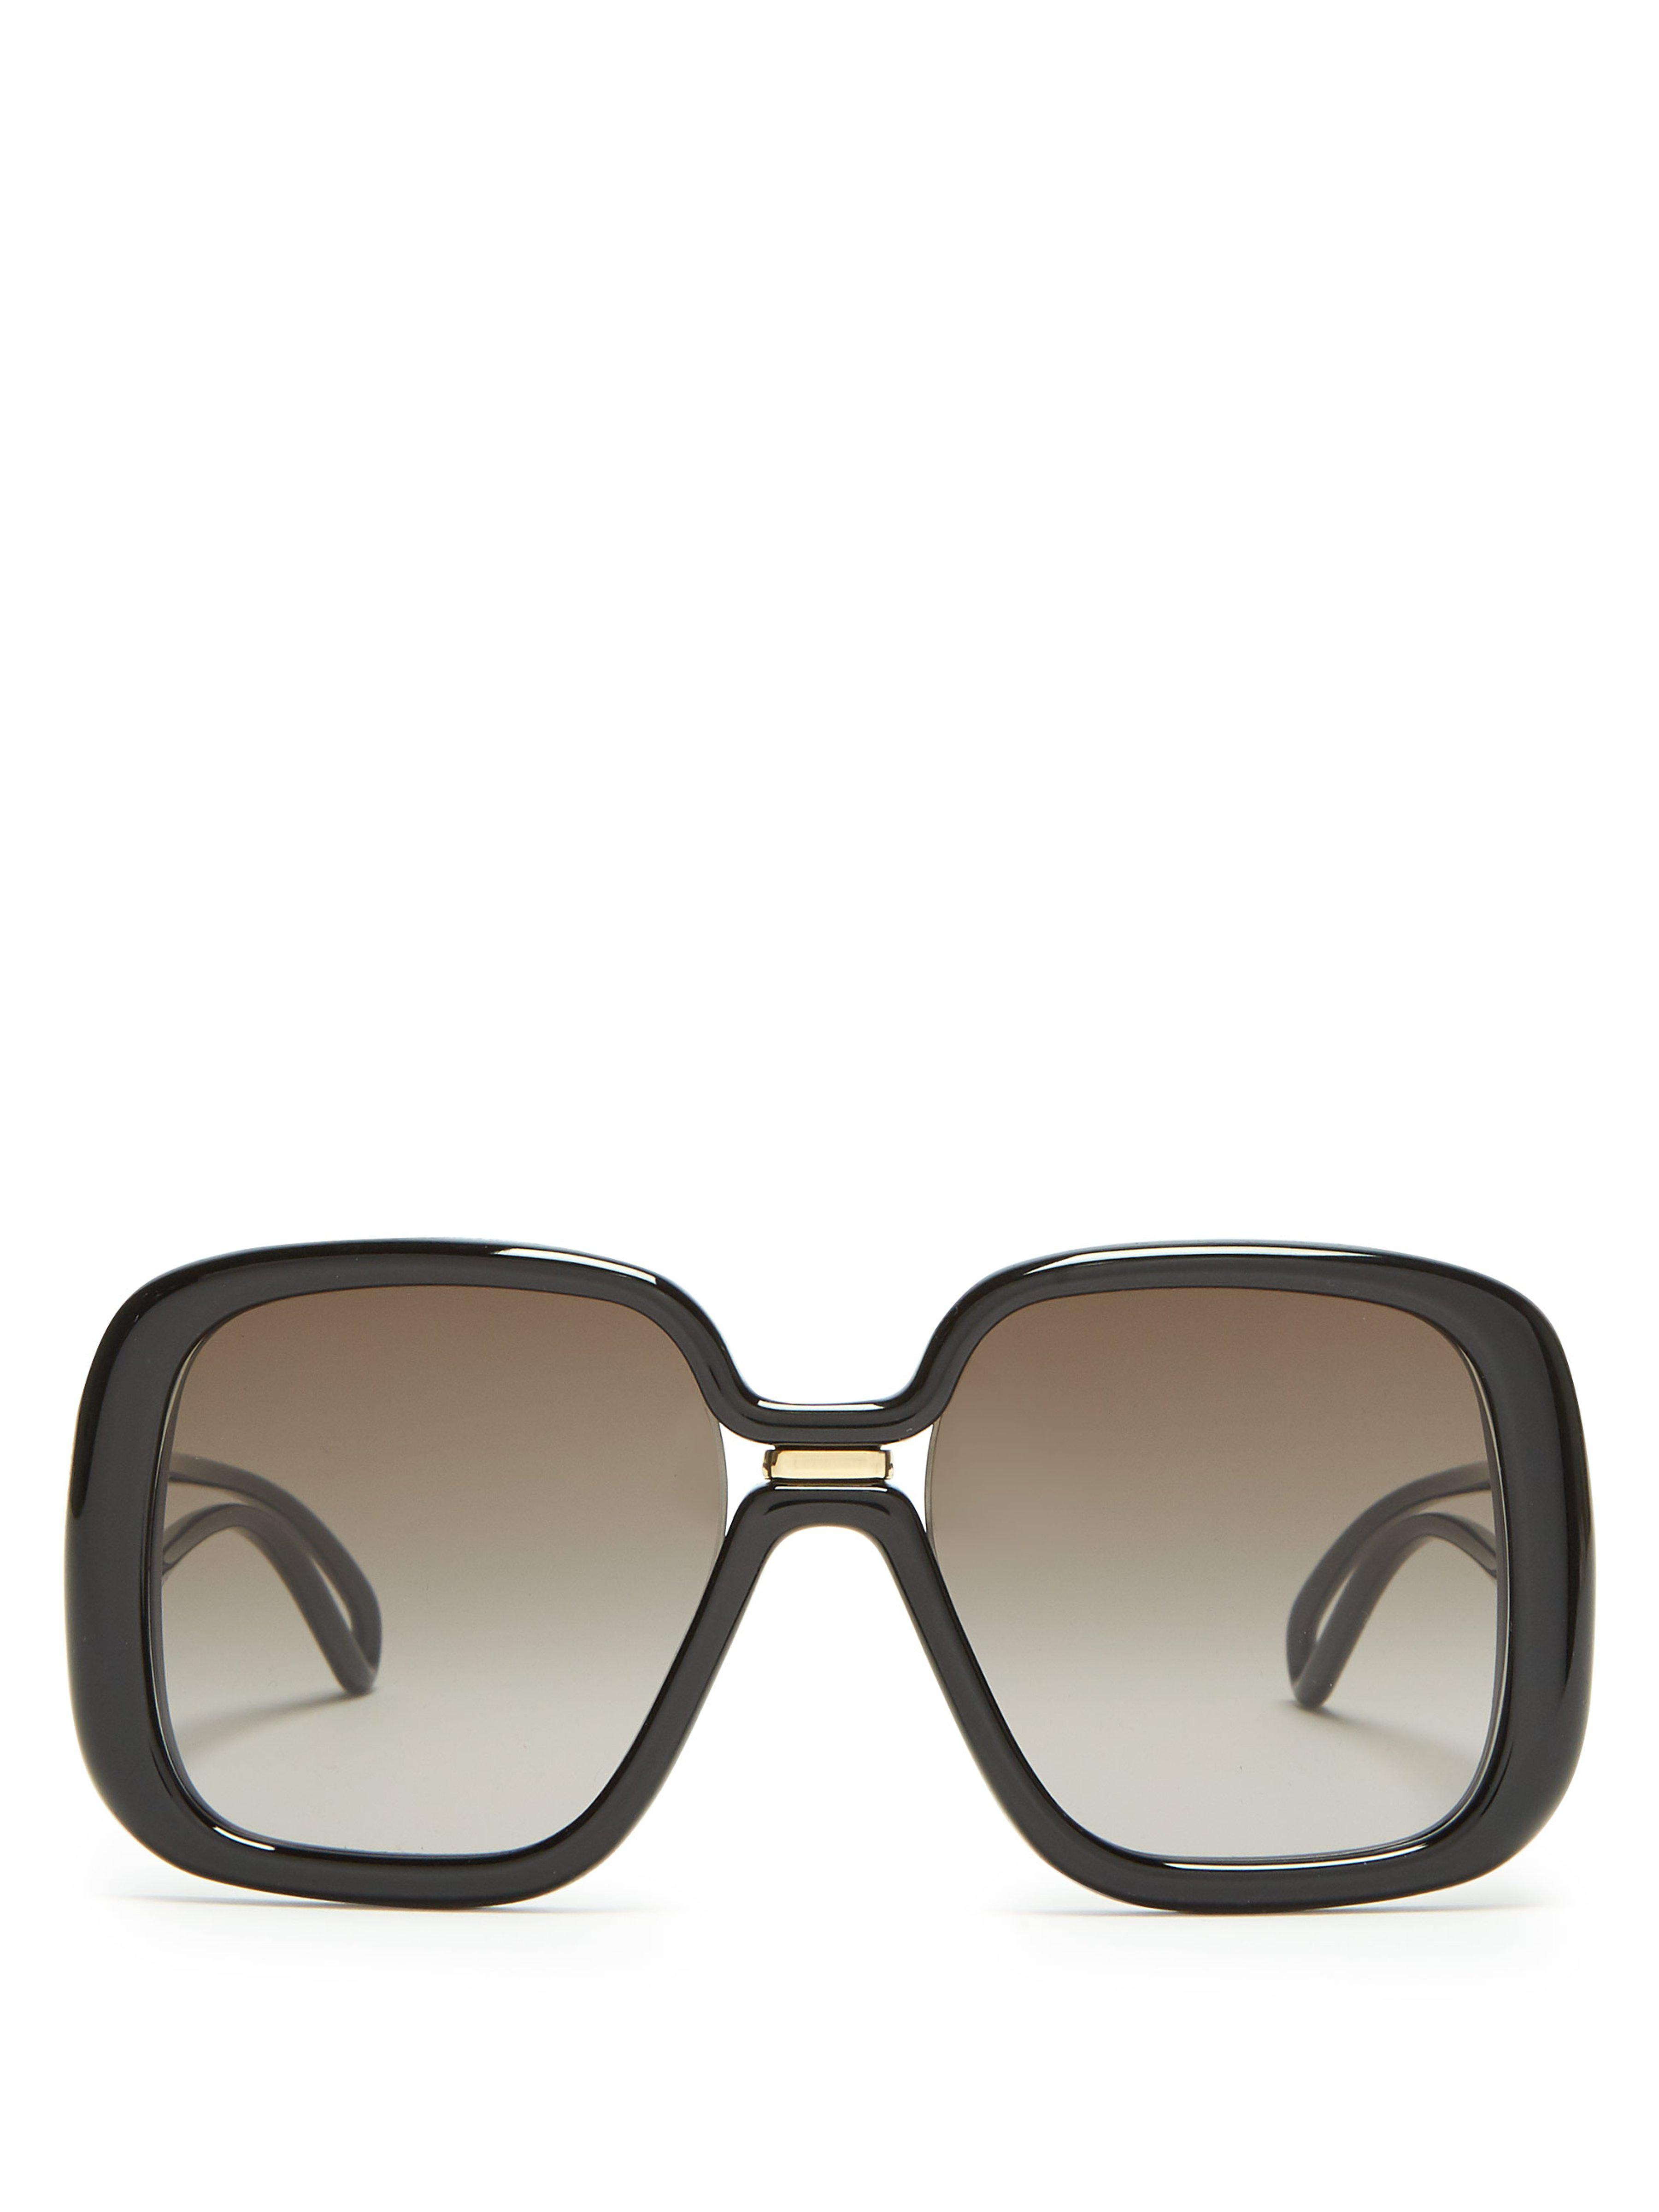 06a10908ba689 Givenchy Oversized Square Frame Acetate Sunglasses in Black - Lyst